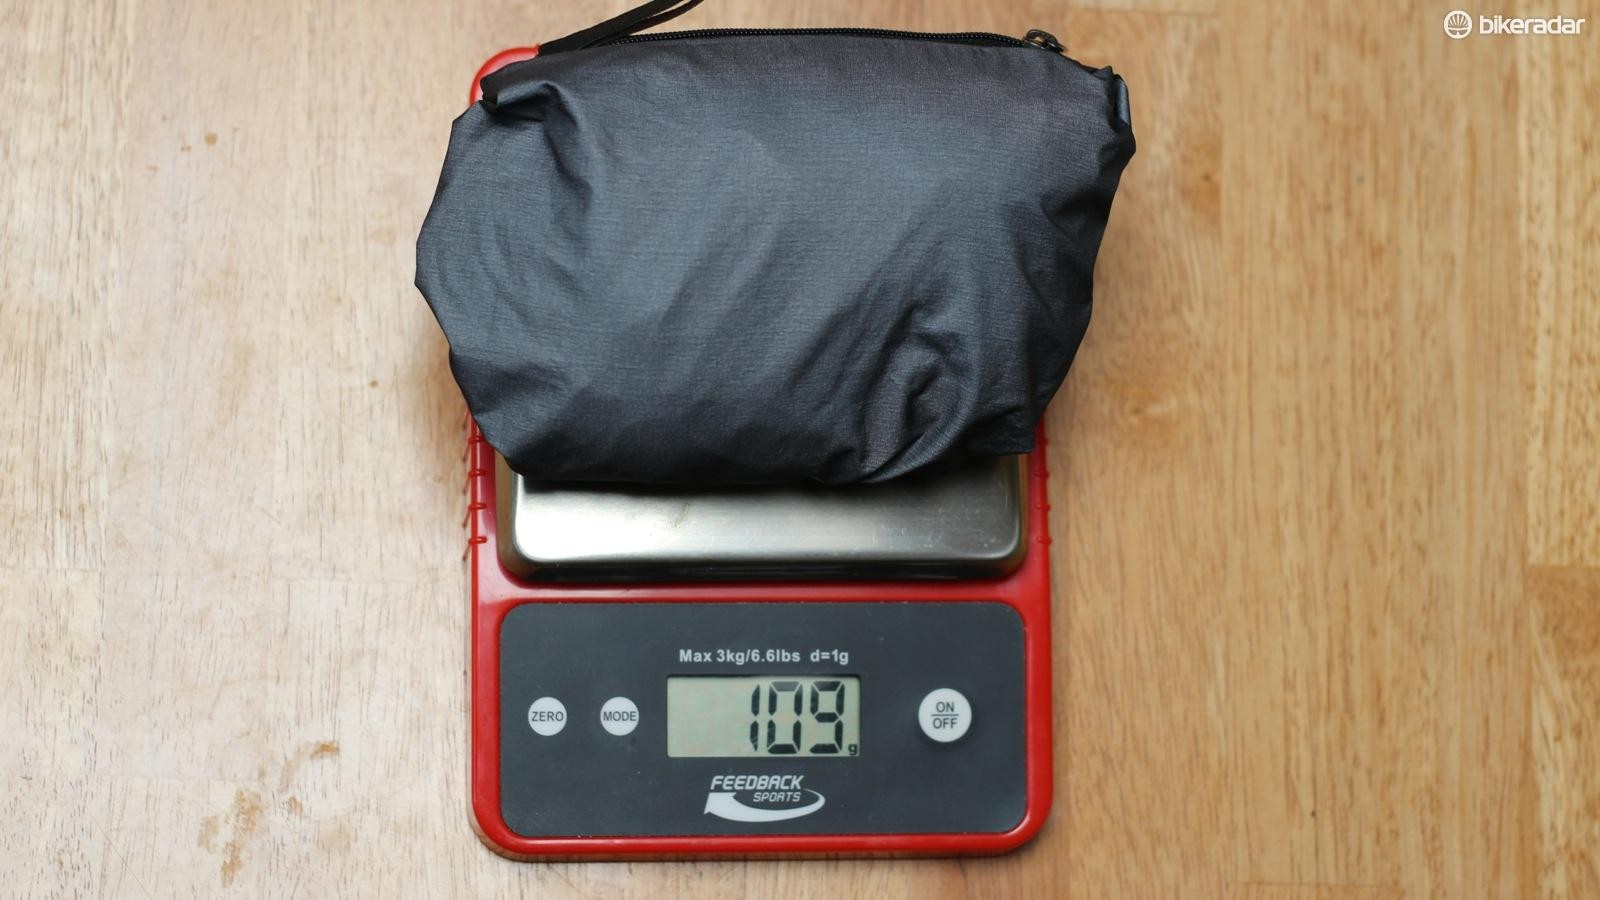 The Gore One jacket weighed 109g for a size large on our scales